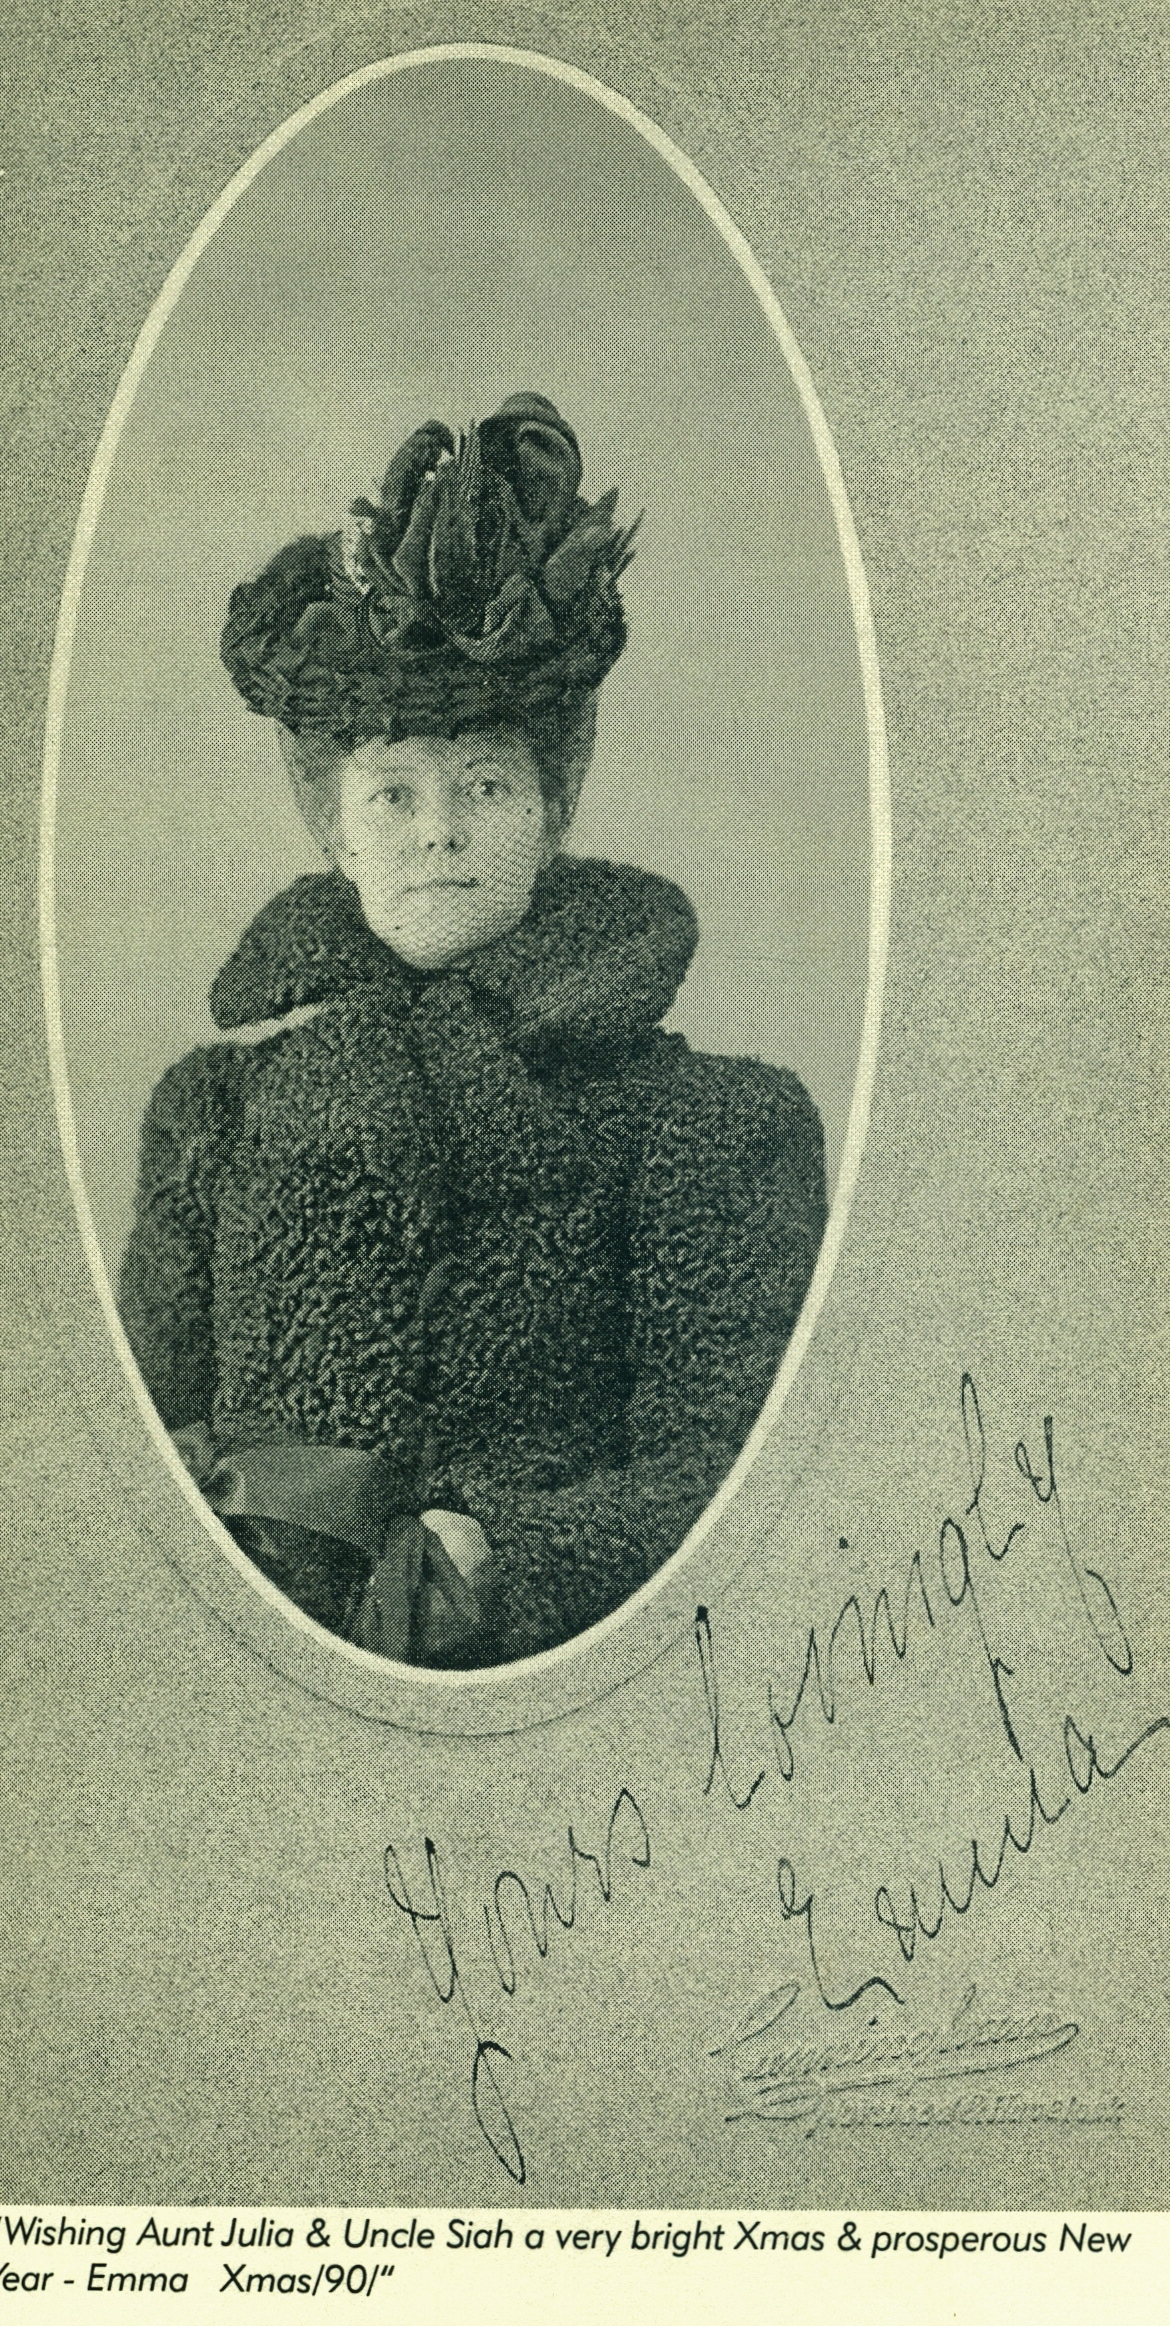 Emma Jane Pearce Campbellc. 1890